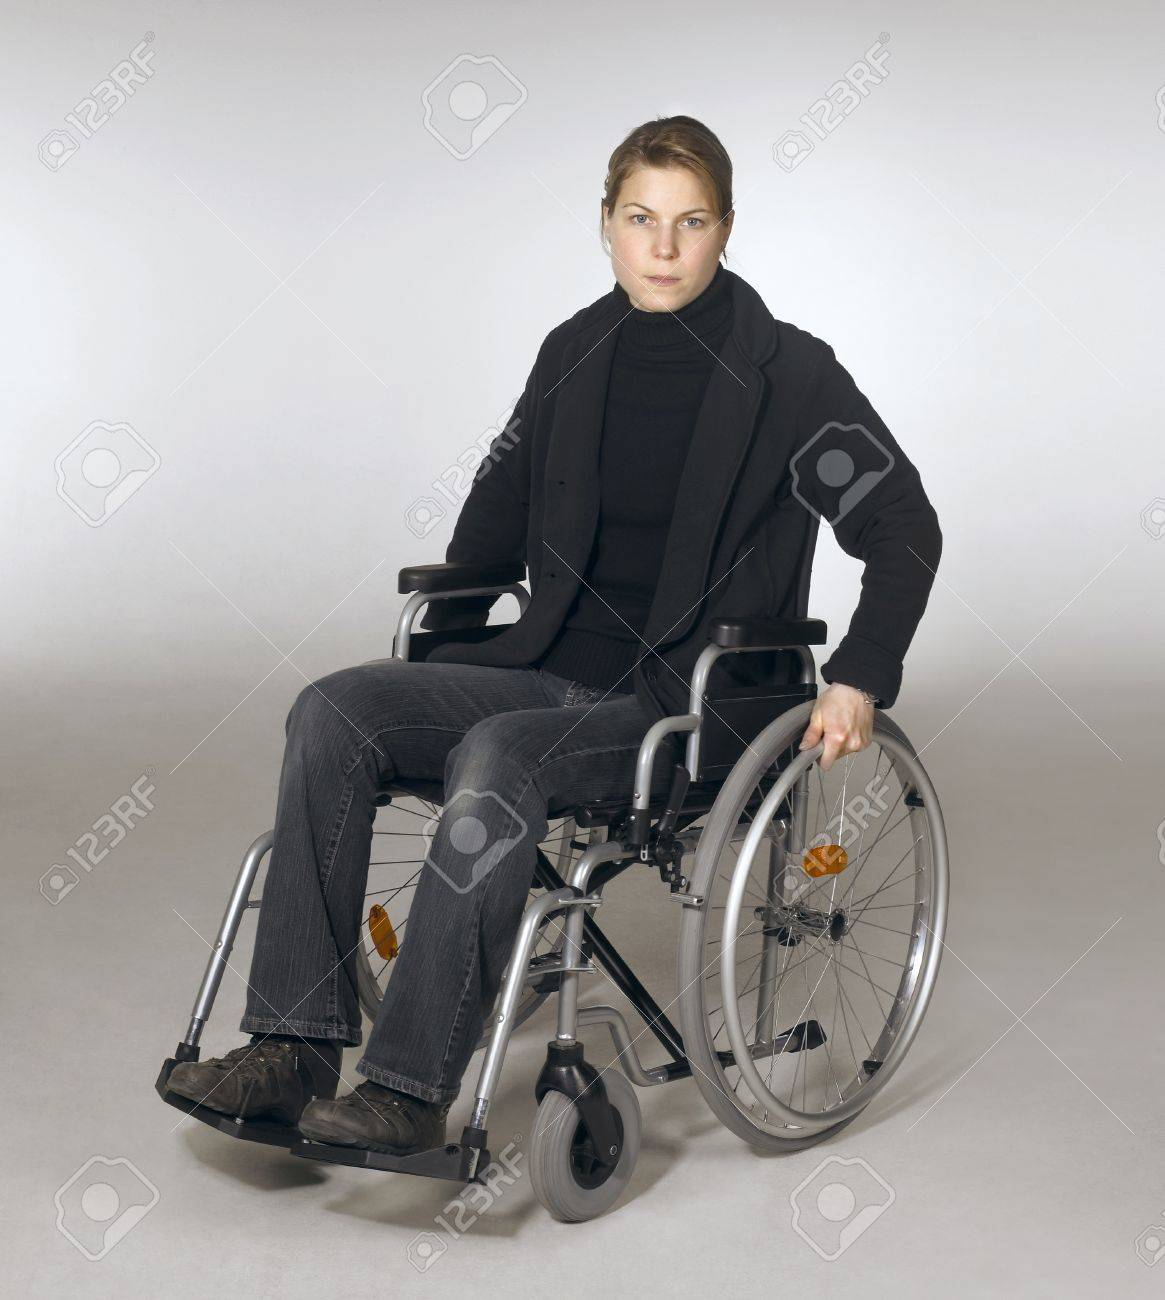 Young Person In Wheelchair - Stock photo studio photography of a young woman sitting in a wheelchair in light grey back